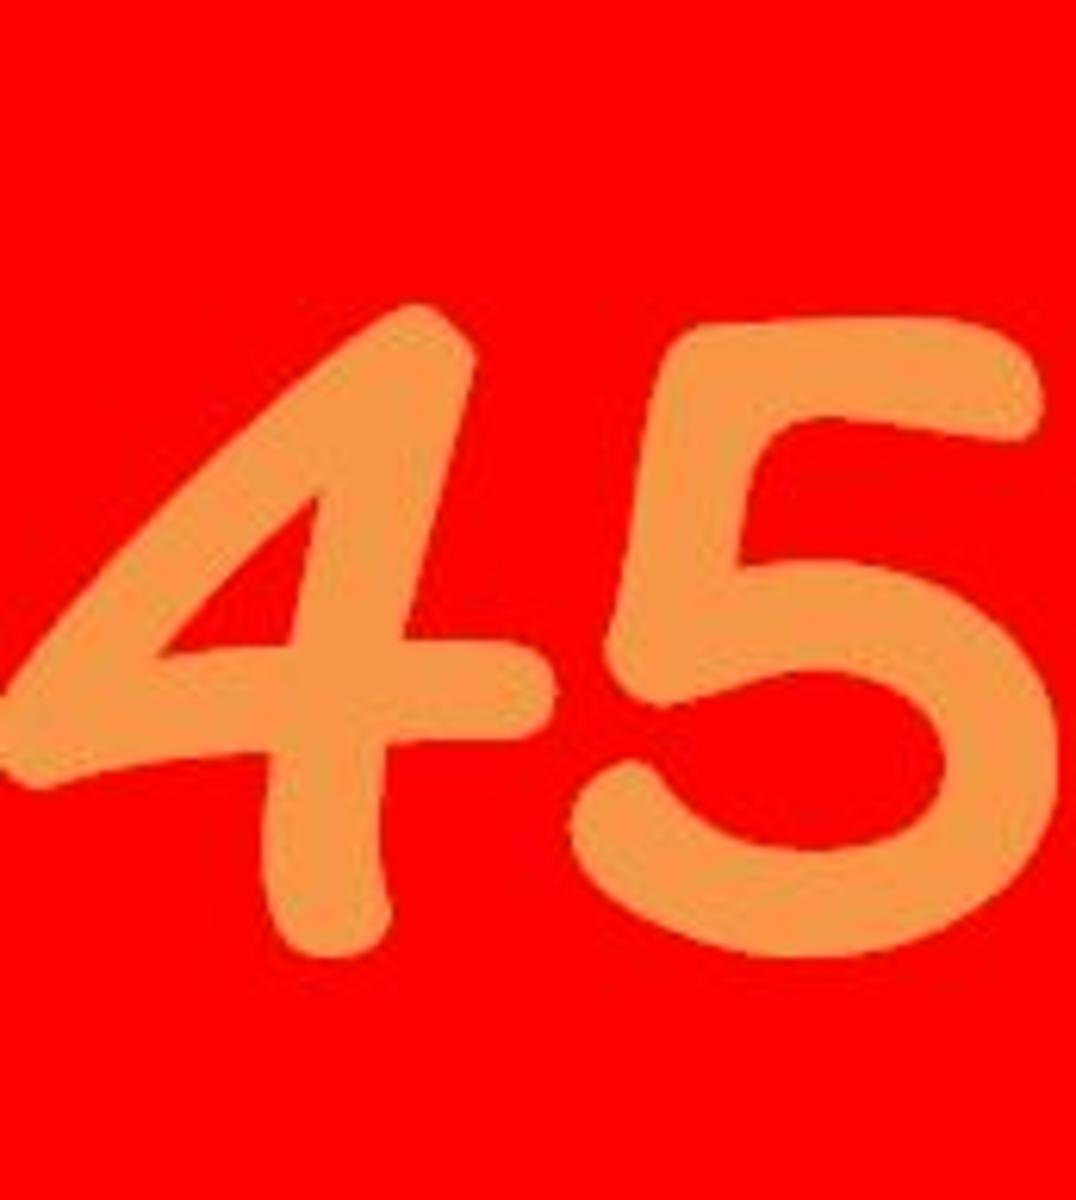 The number 45. Math facts, music facts, movie facts and other fun facts of forty five.